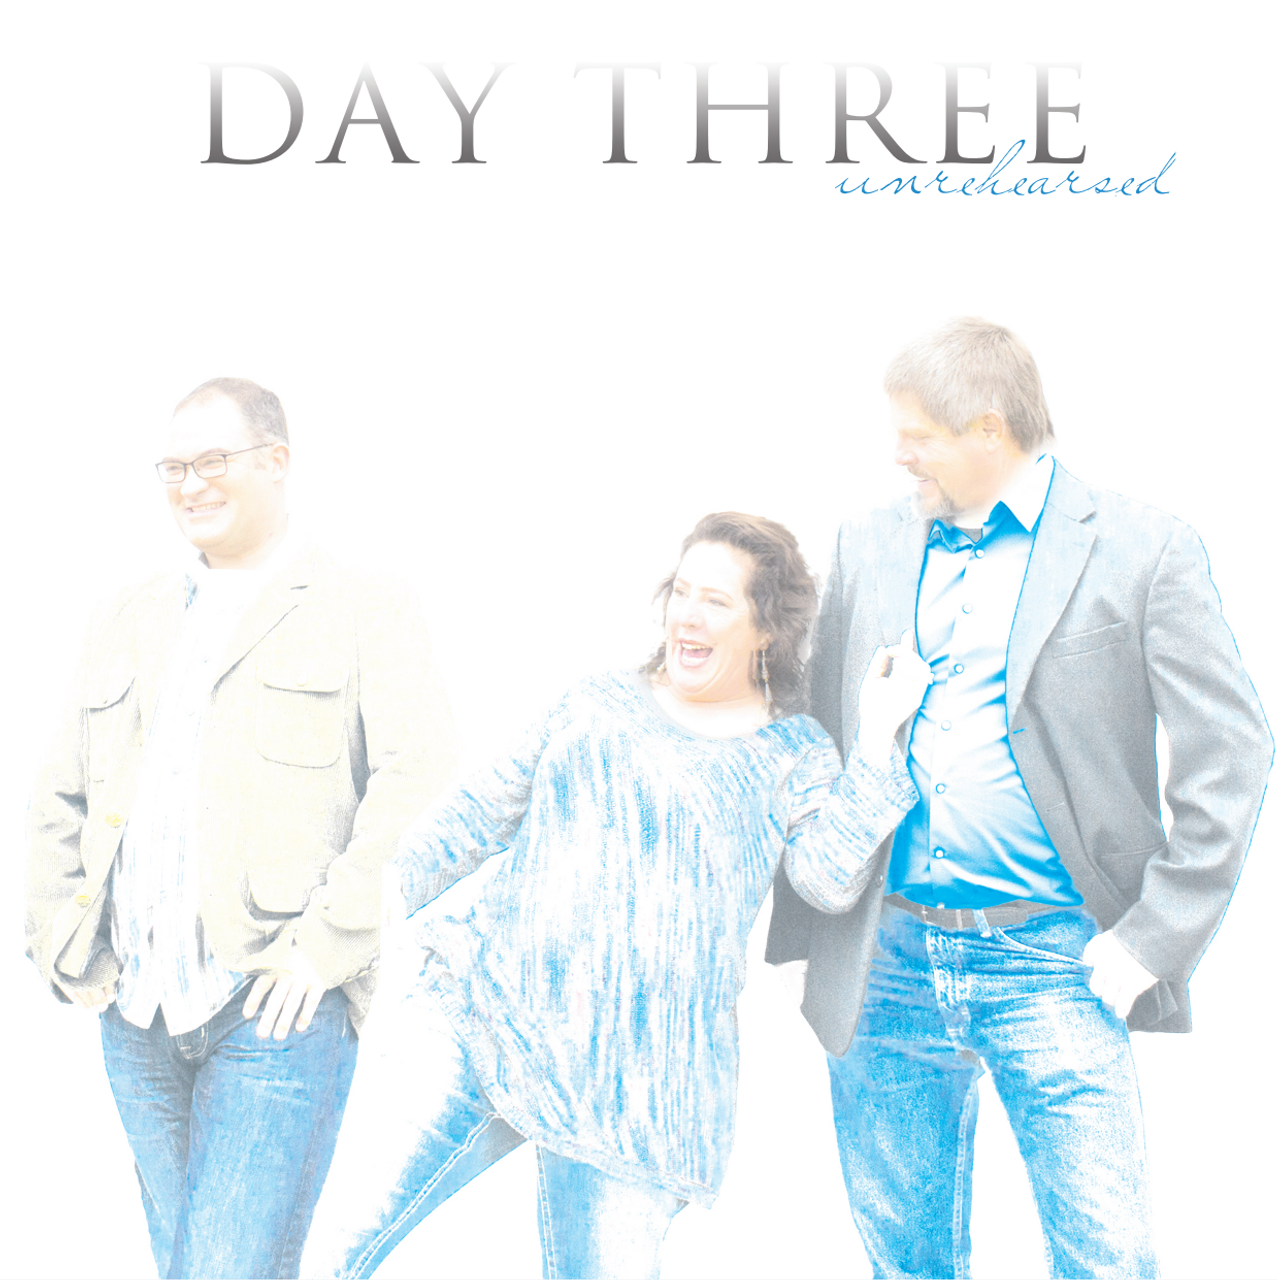 Day Three - Unrehearsed.  Produced by Jonathan Goodwin at Redemption World Records in Nashville, TN.